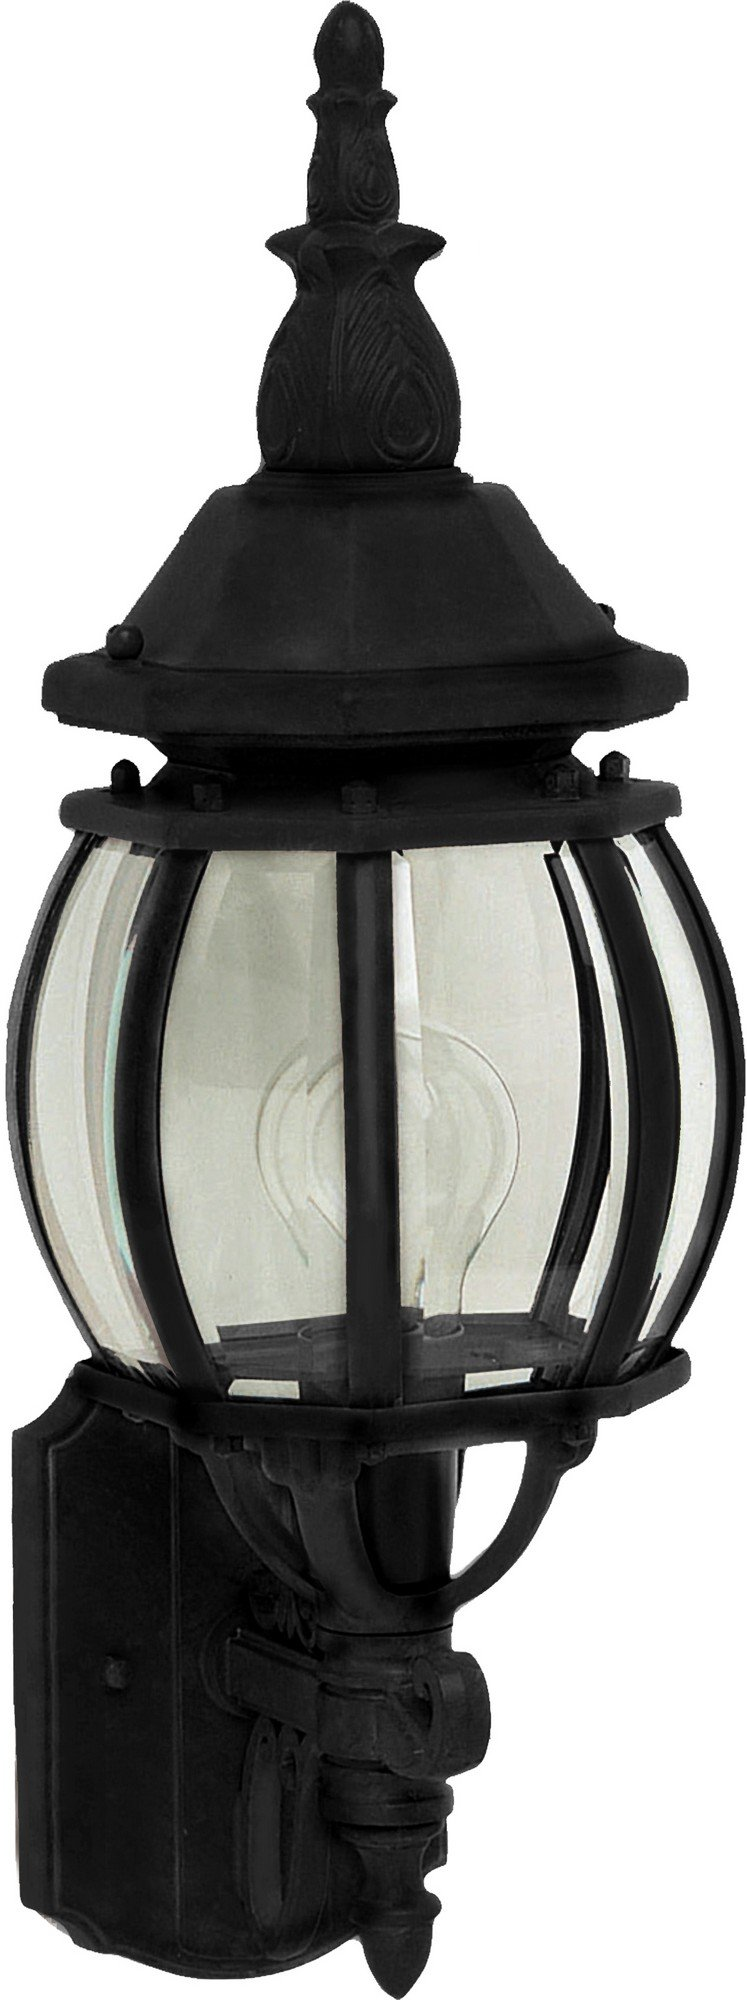 Maxim 1032BK Crown Hill 1-Light Outdoor Wall Lantern, Black Finish, Clear Glass, MB Incandescent Incandescent Bulb , 100W Max., Dry Safety Rating, Standard Dimmable, Glass Shade Material, 5750 Rated Lumens